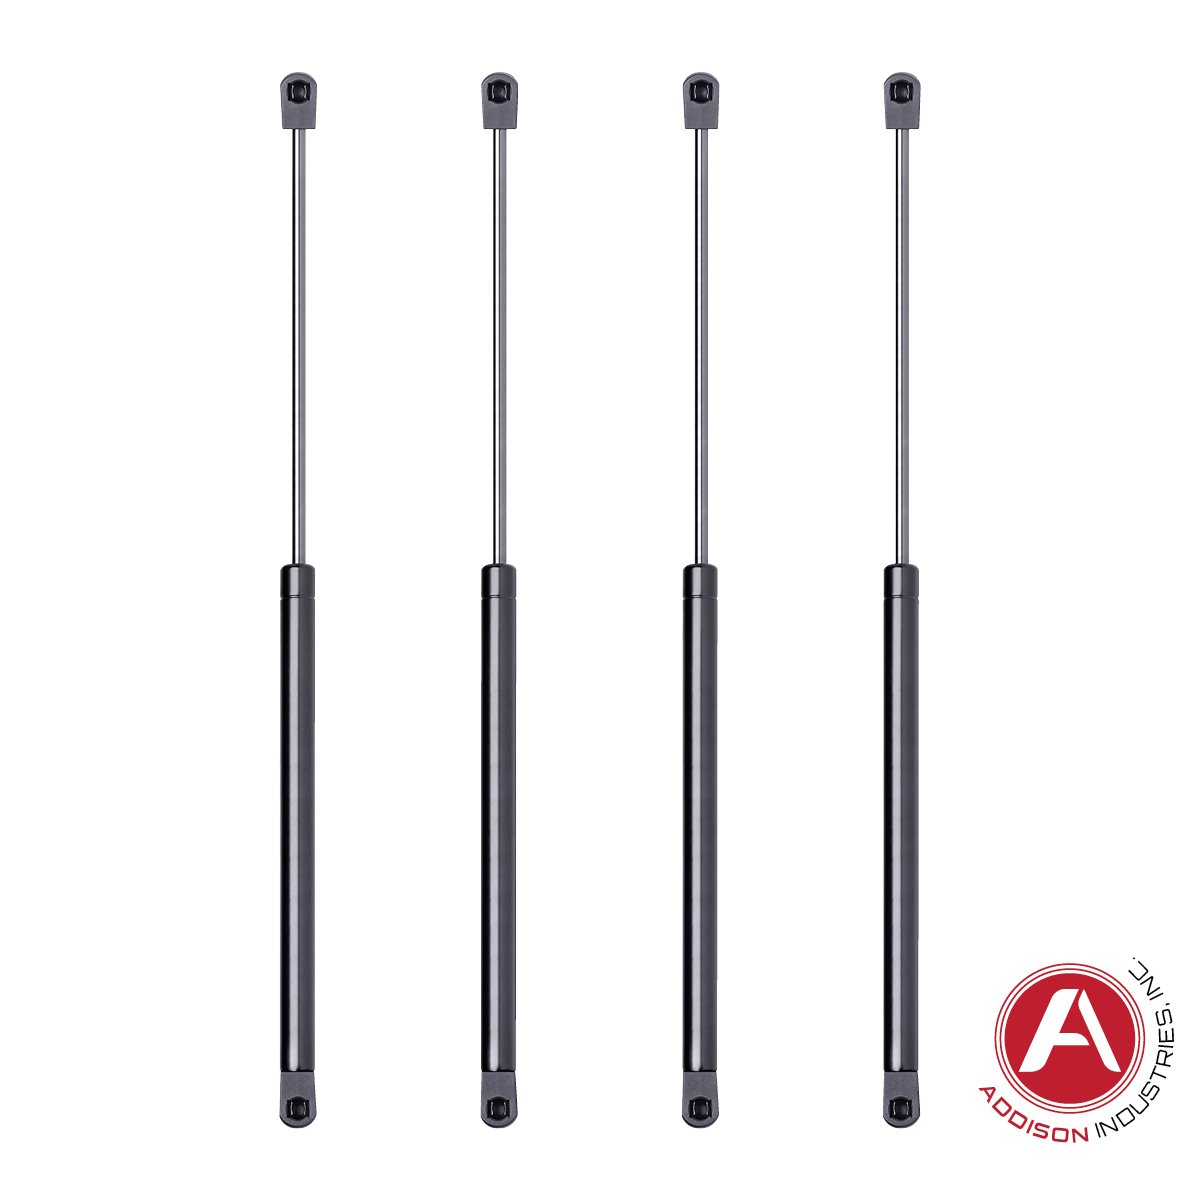 Addison Top Quality 20 Inch Gas Spring, 100 LBS (445 Newton) Force Each, Set of 4, Gas Strut Gas Prop Gas Lift Support Lift Strut, Featuring Heavy Duty Extra Wide Diameter Tube 18 mm/Rod 8 mm